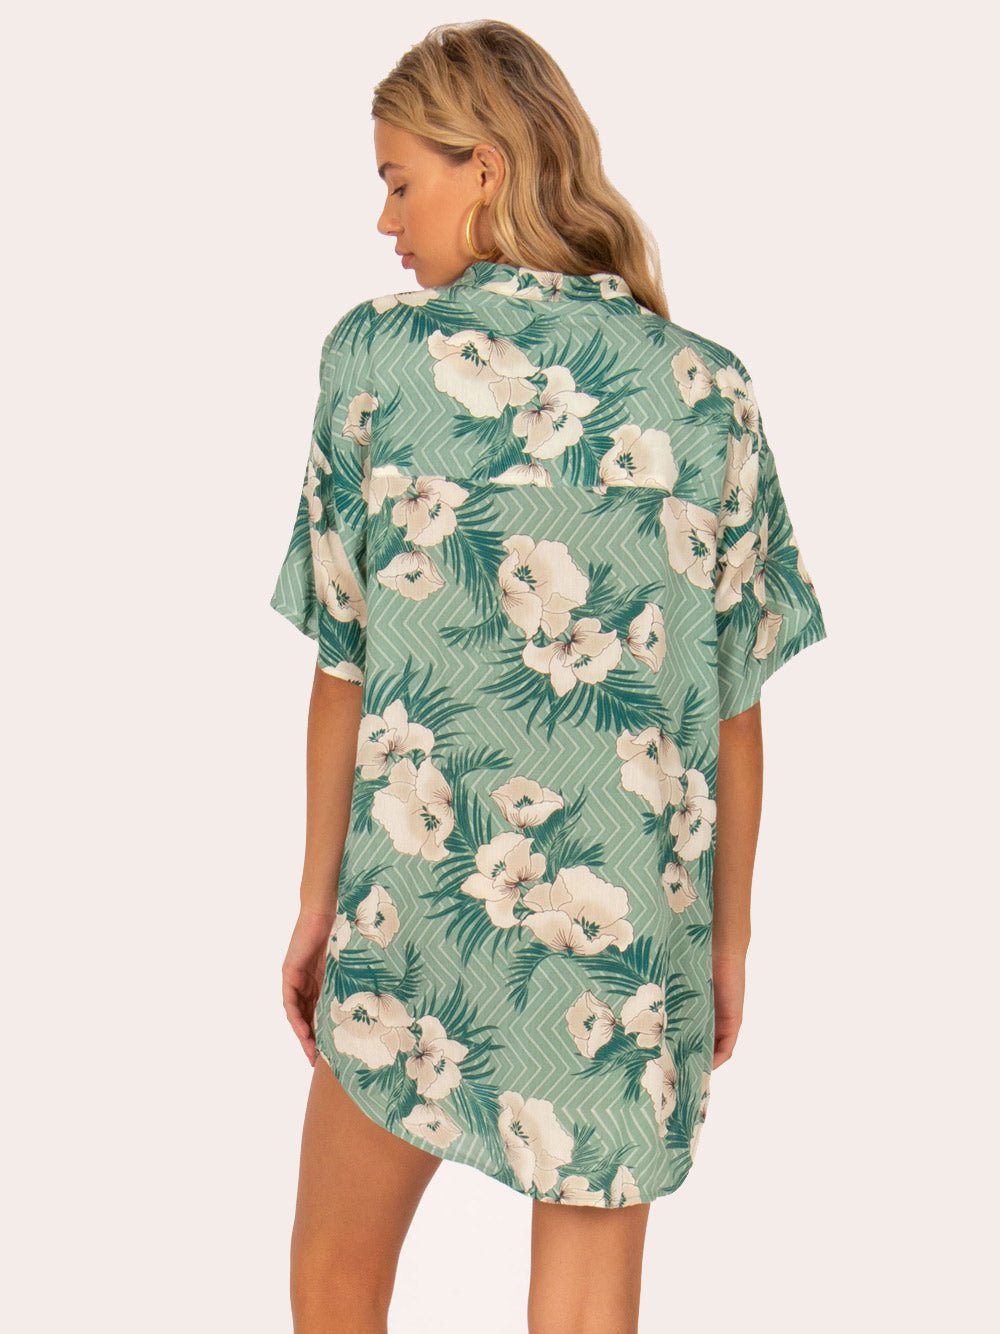 AMUSE SOCIETY Island Oasis Dress - Green